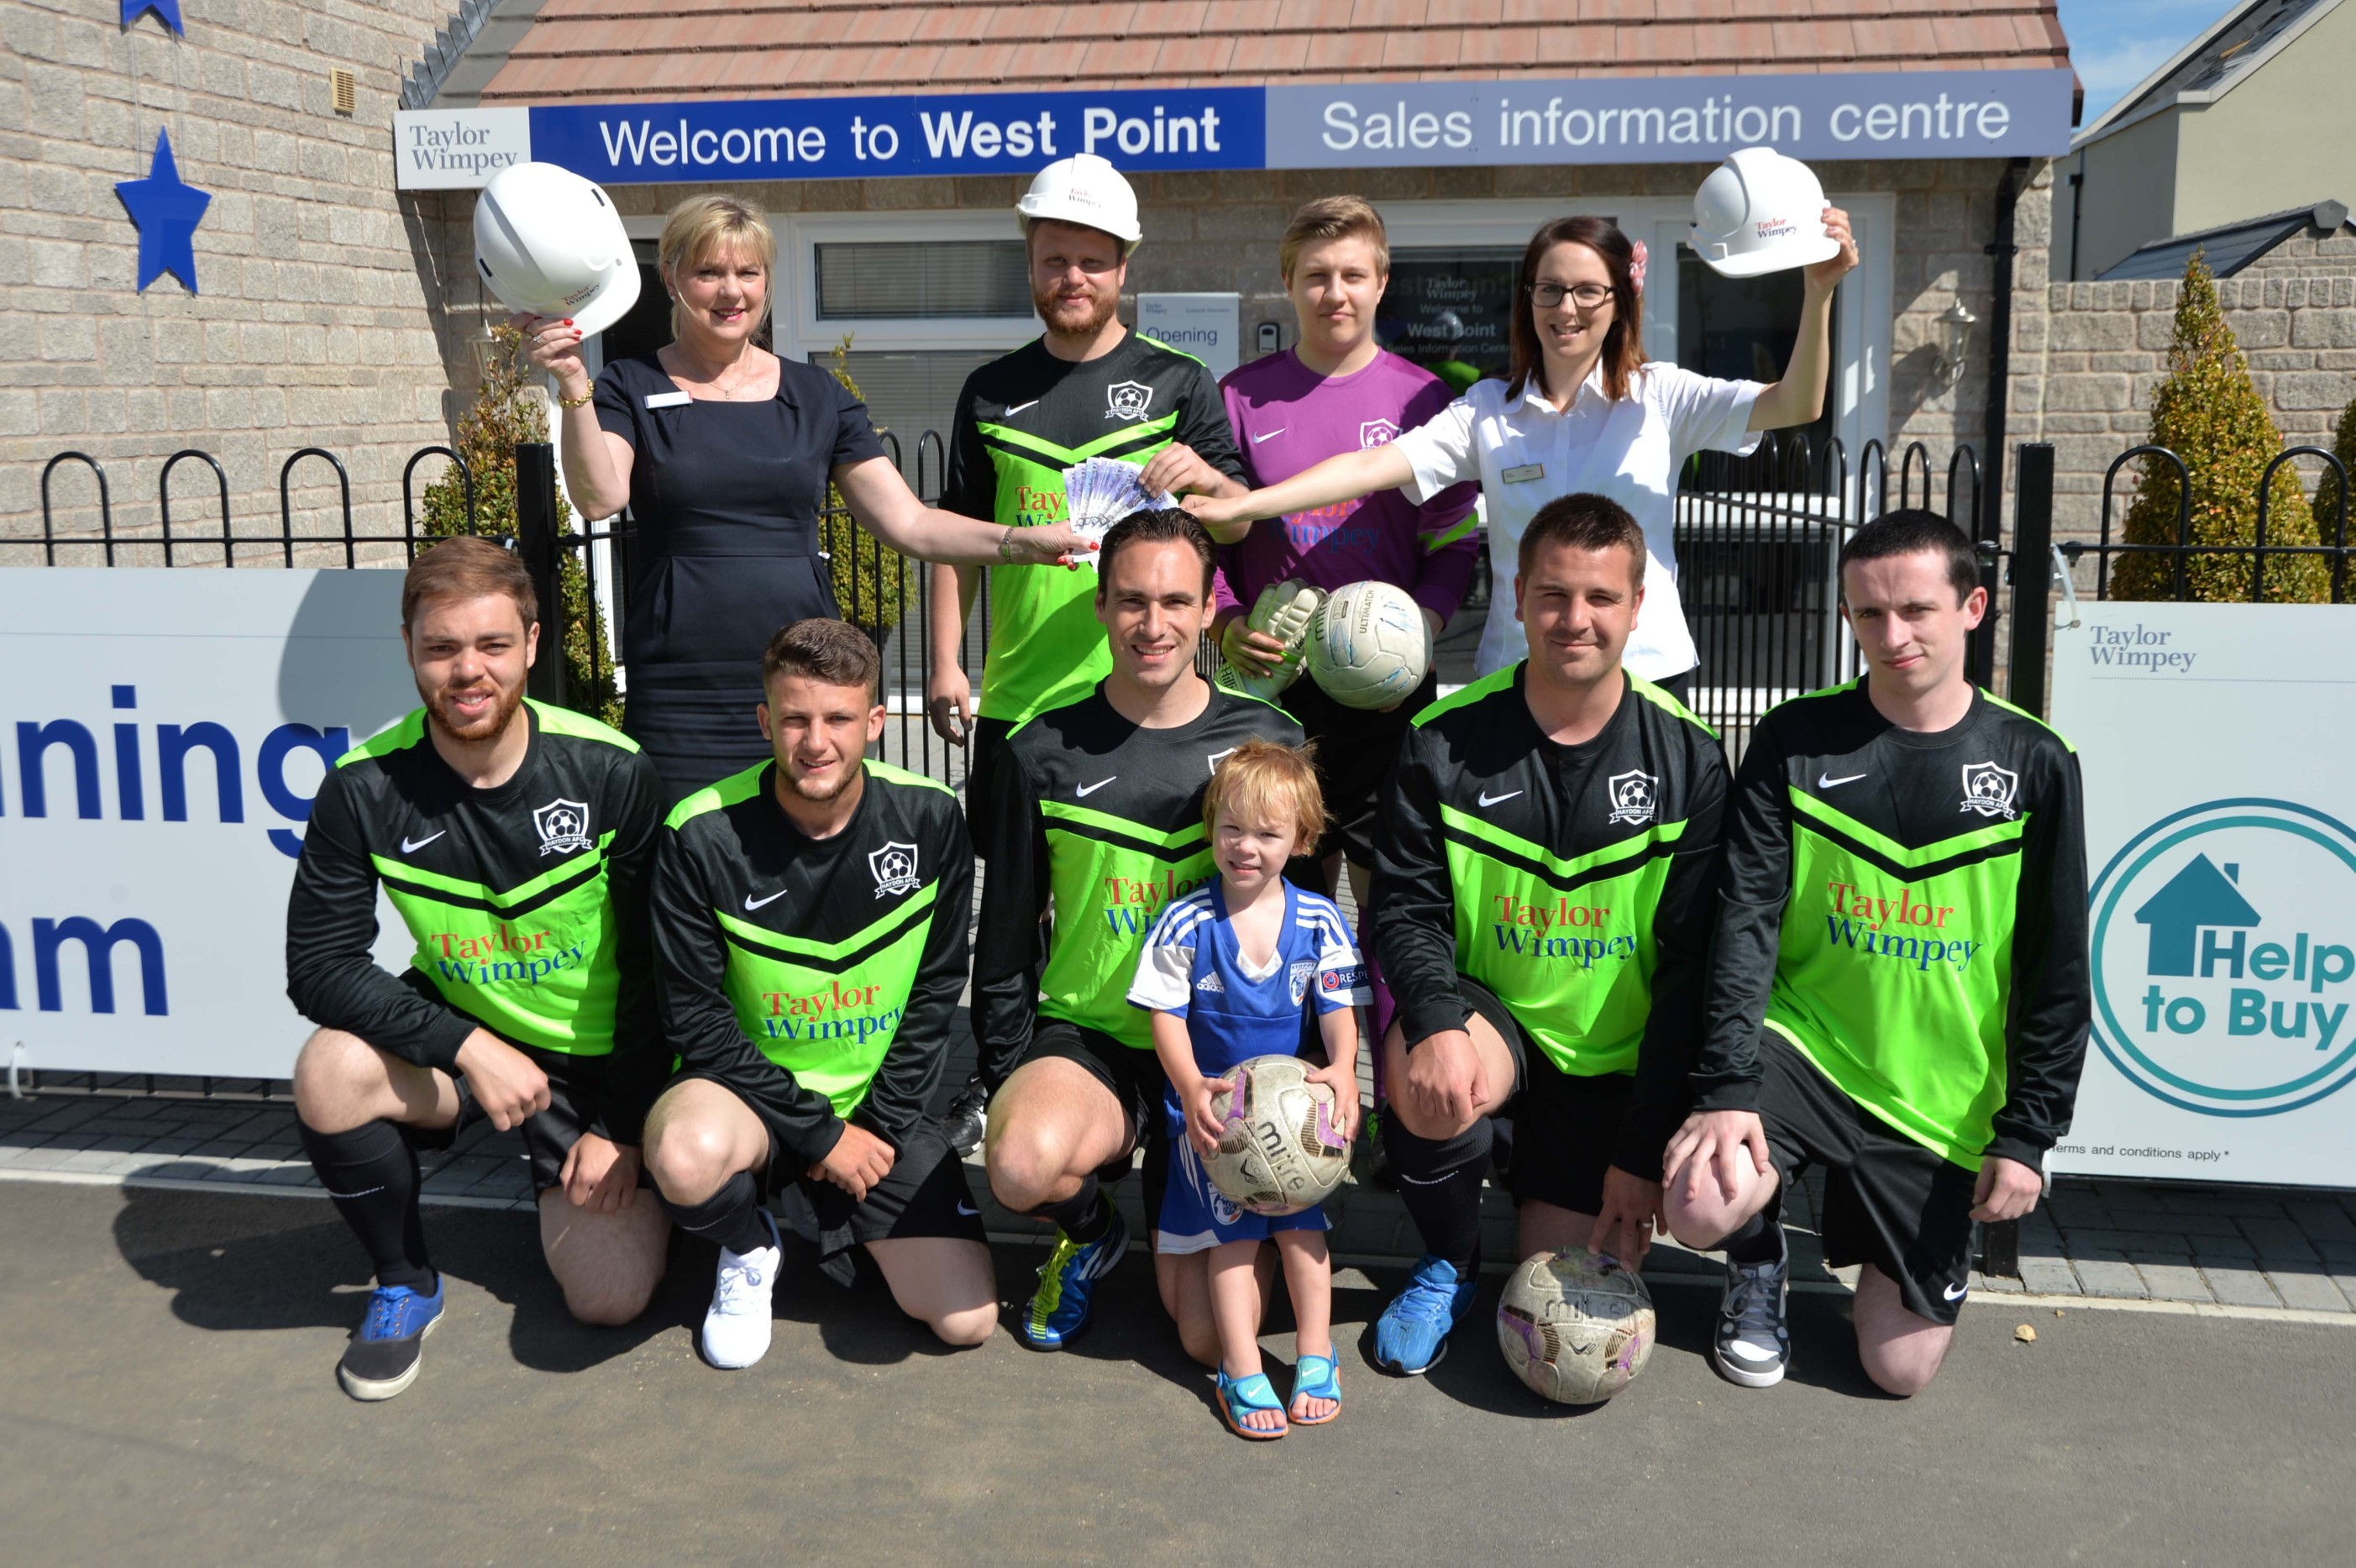 Taylor Wimpey - West Point - Heydon FC Sposnorship (2)